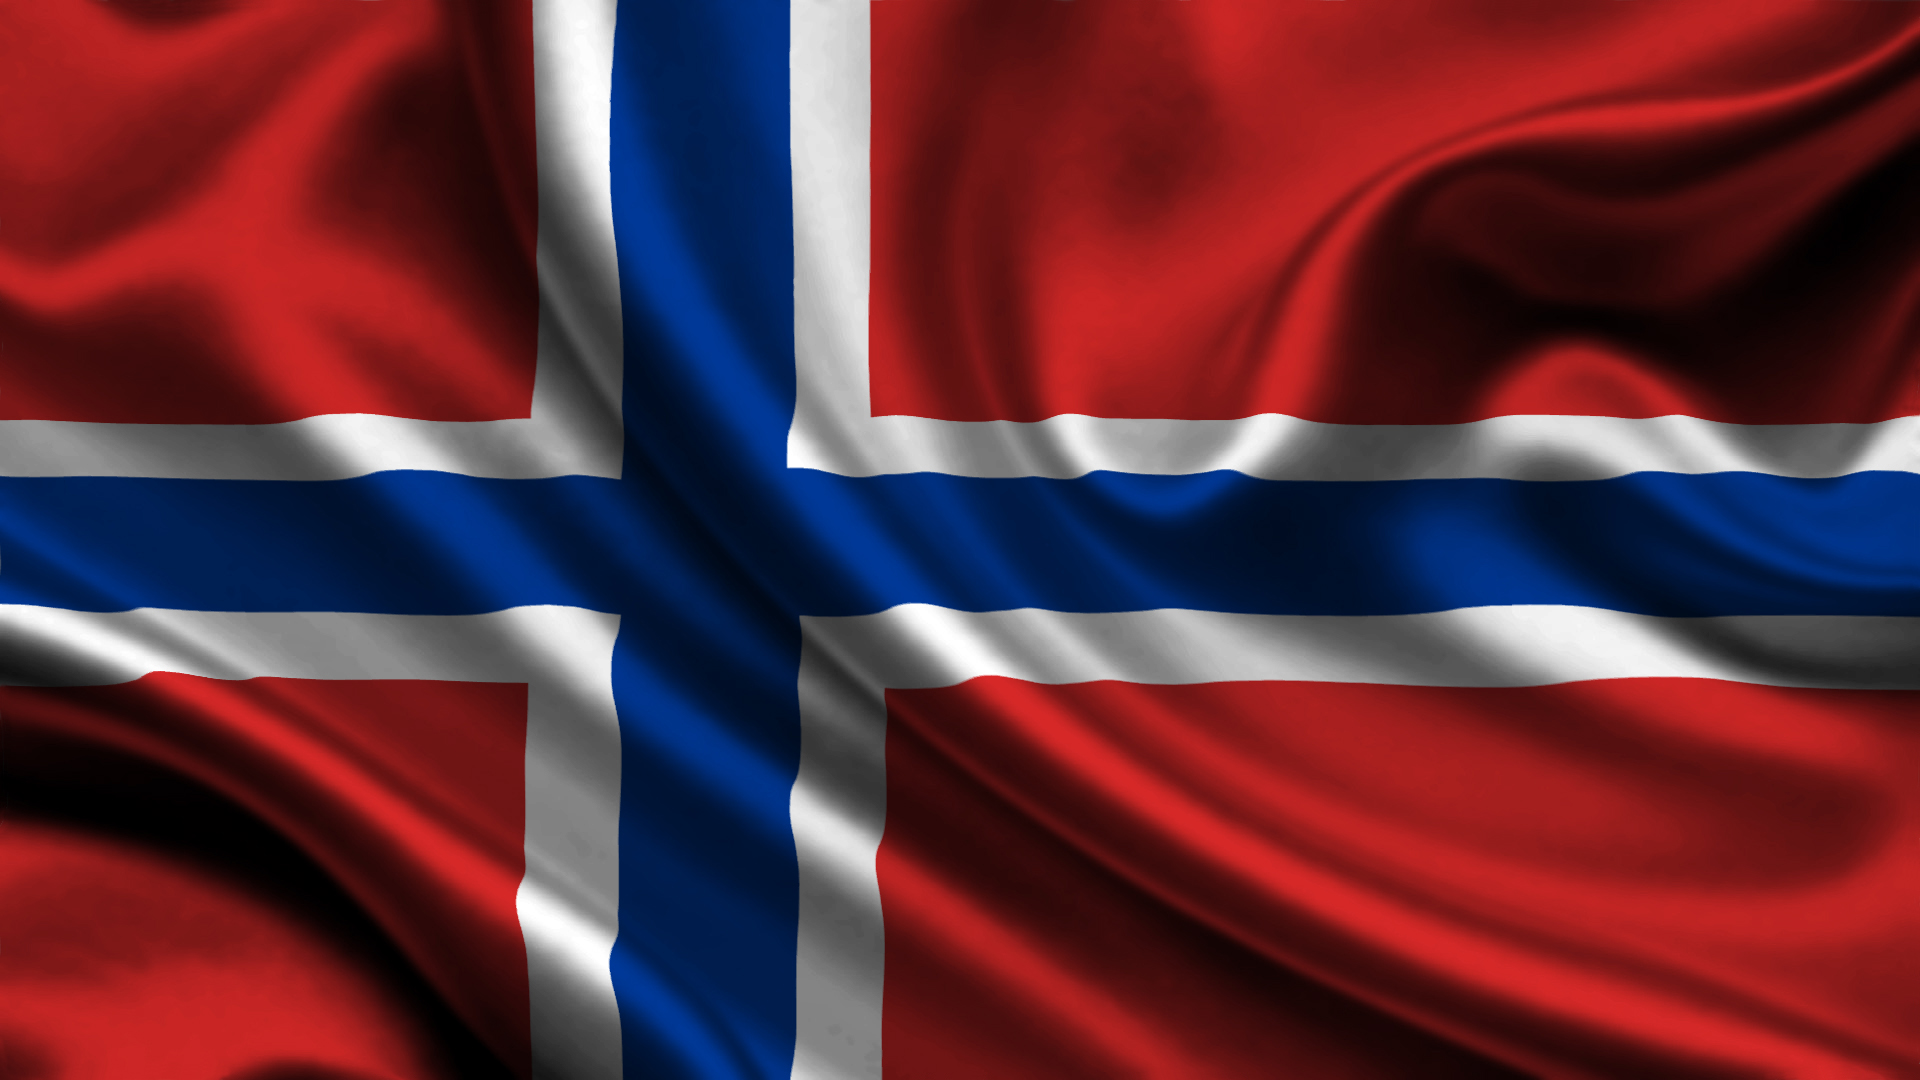 Norway Flag colors meaning history of Norway Flag